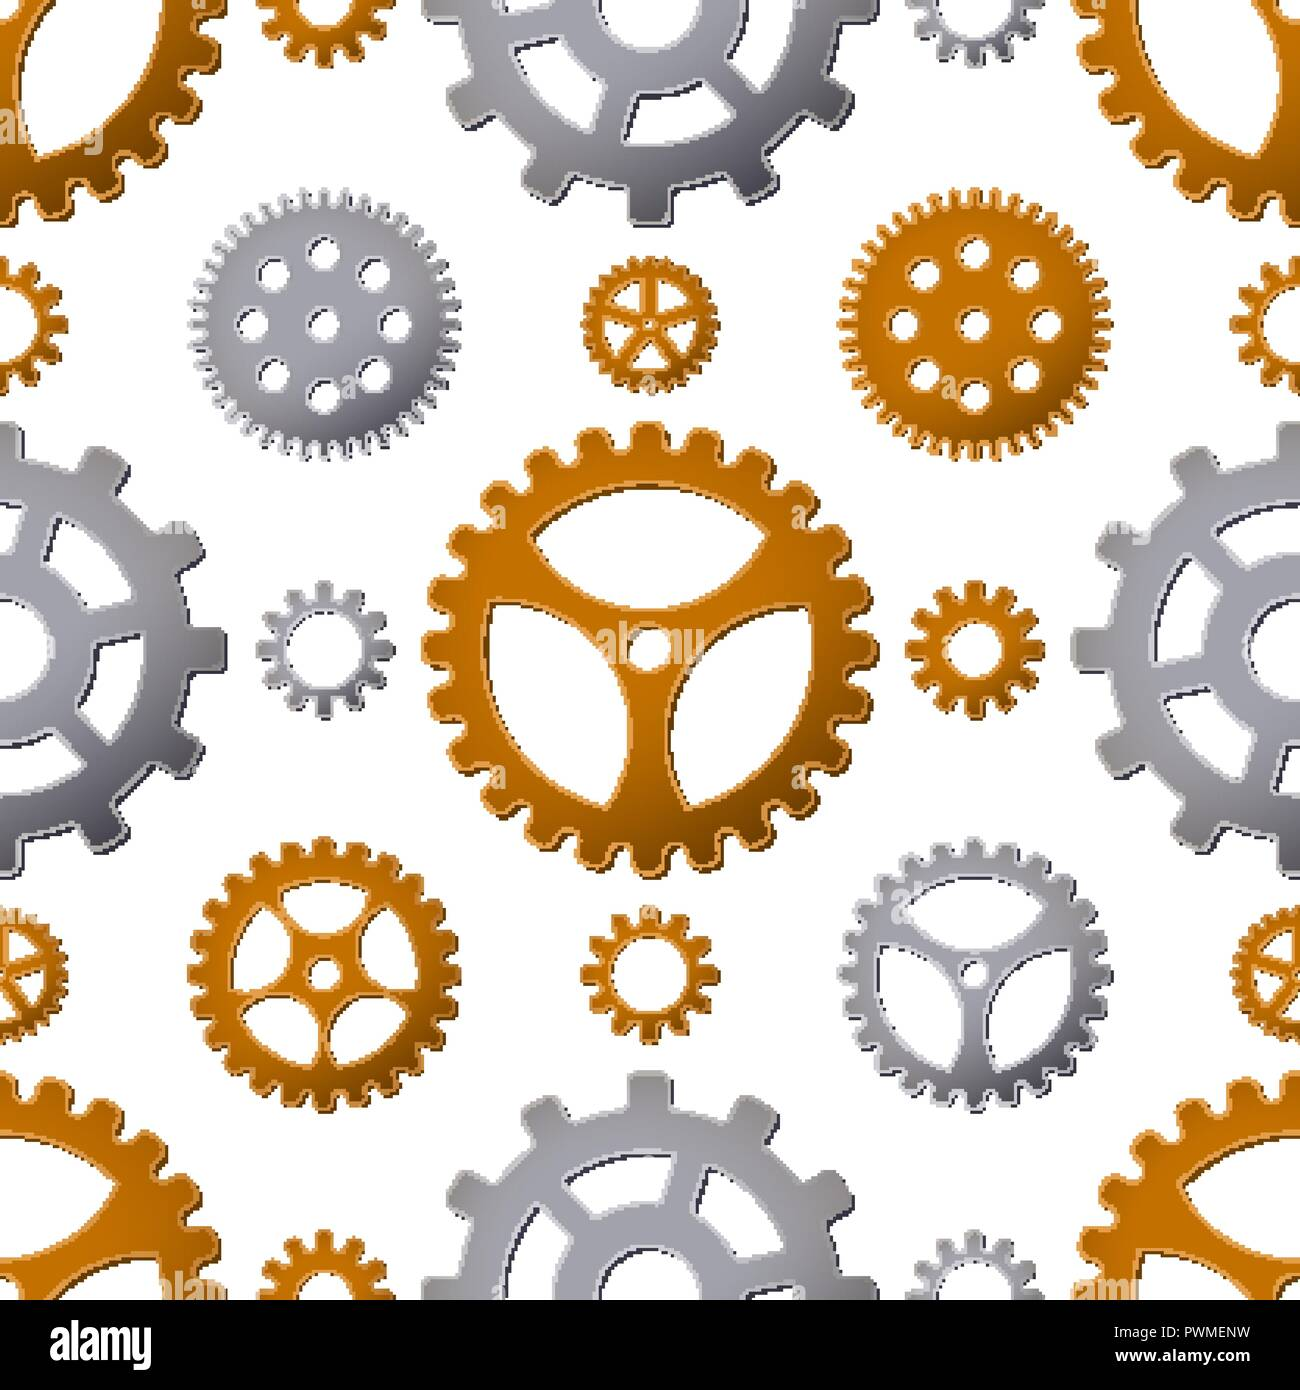 Seamless pattern background with gears. Vector illustration. Industrial mechanism. - Stock Vector